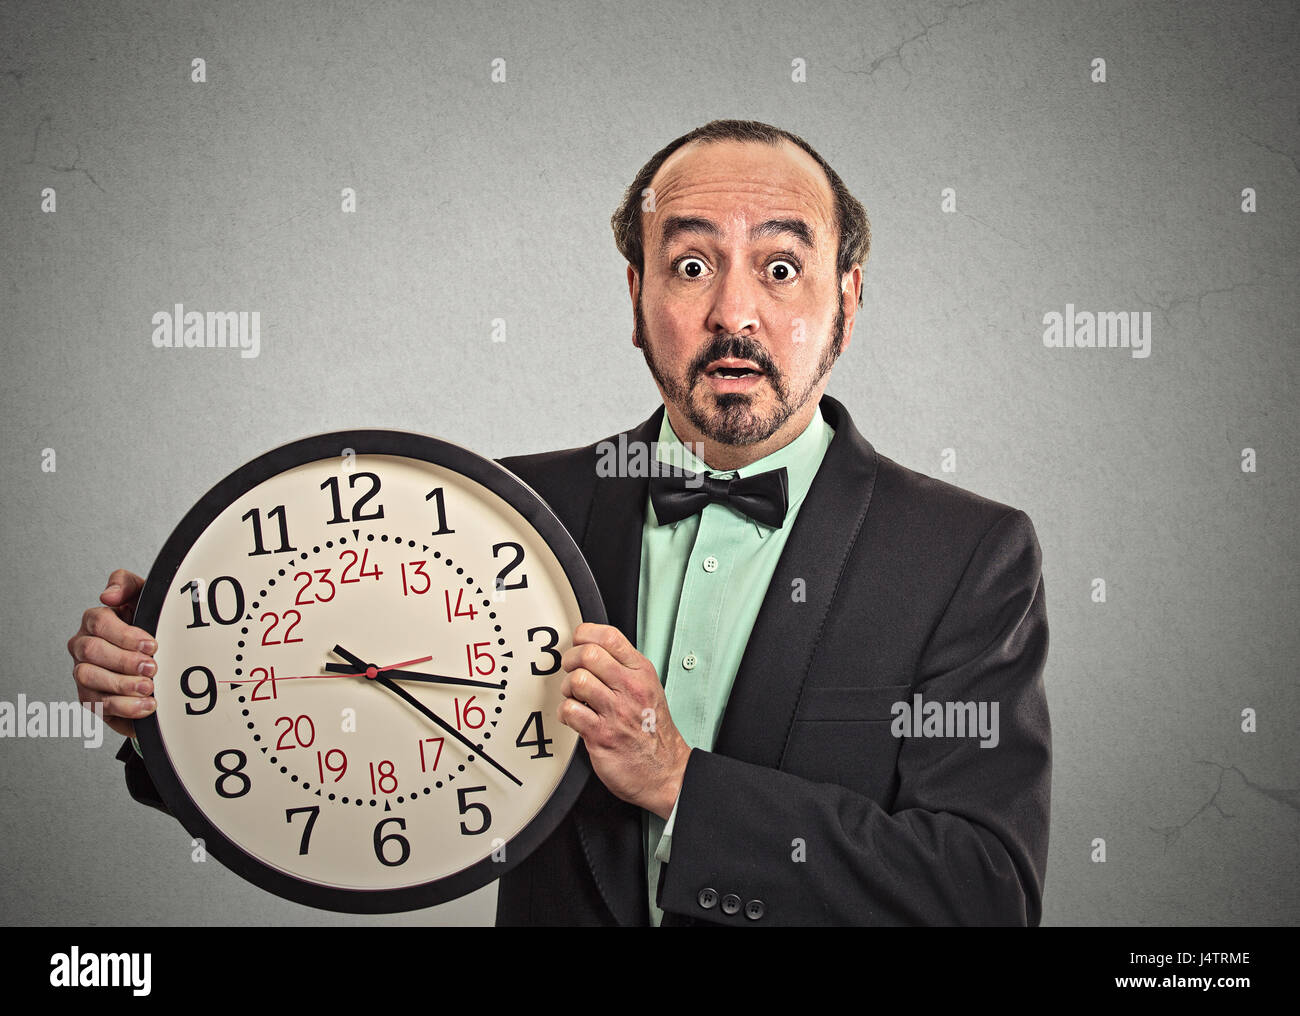 portrait surprised business man in suit holding wall clock isolated grey wall background. Race against time, time - Stock Image